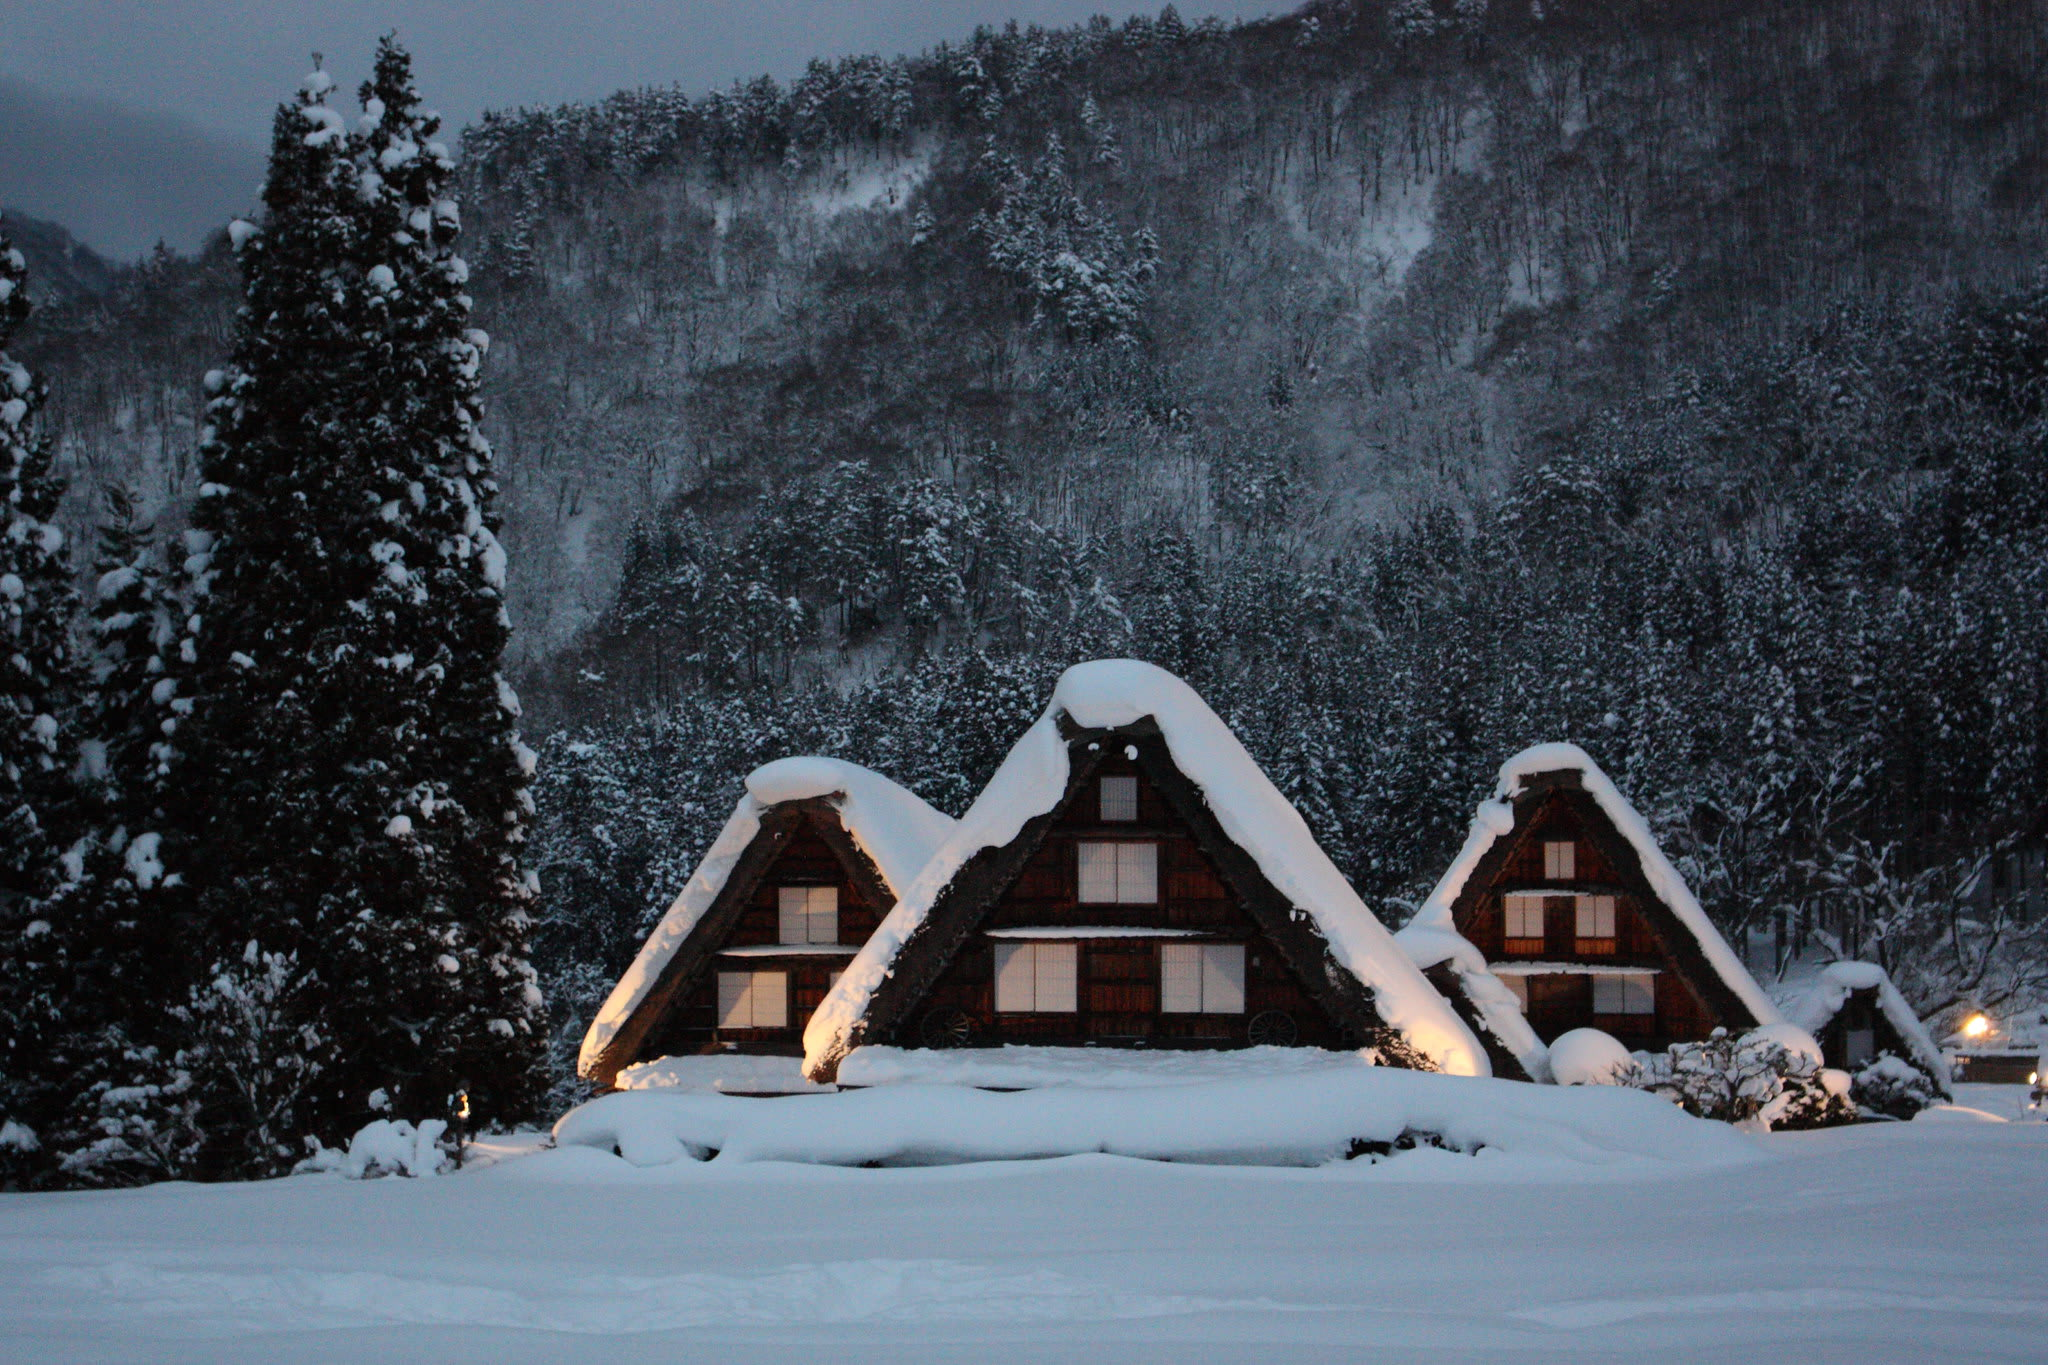 shirakawago gassho village winter